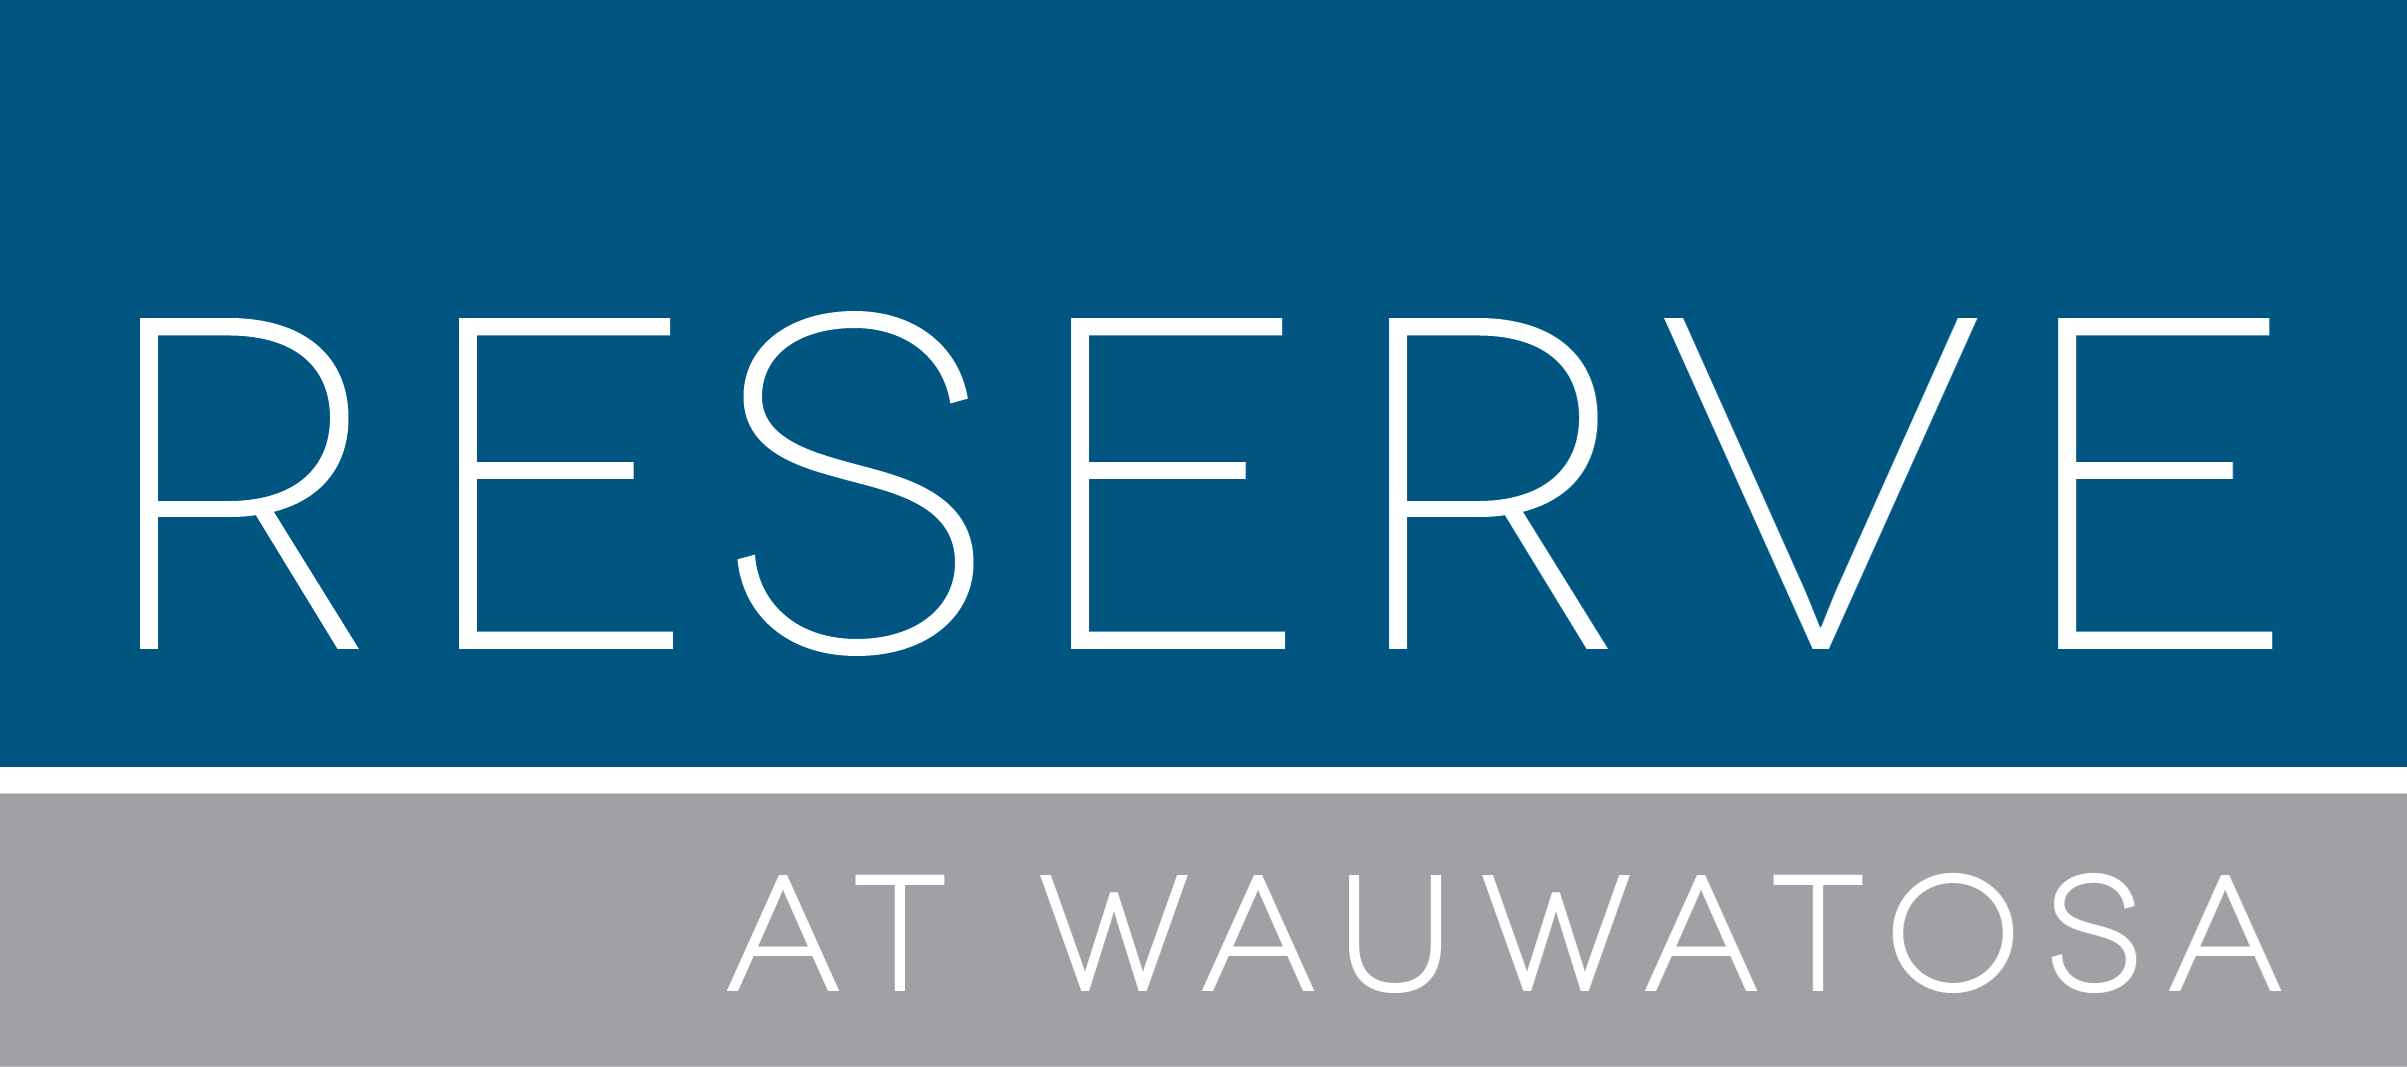 Reserve at Wauwatosa Village Property Logo 16